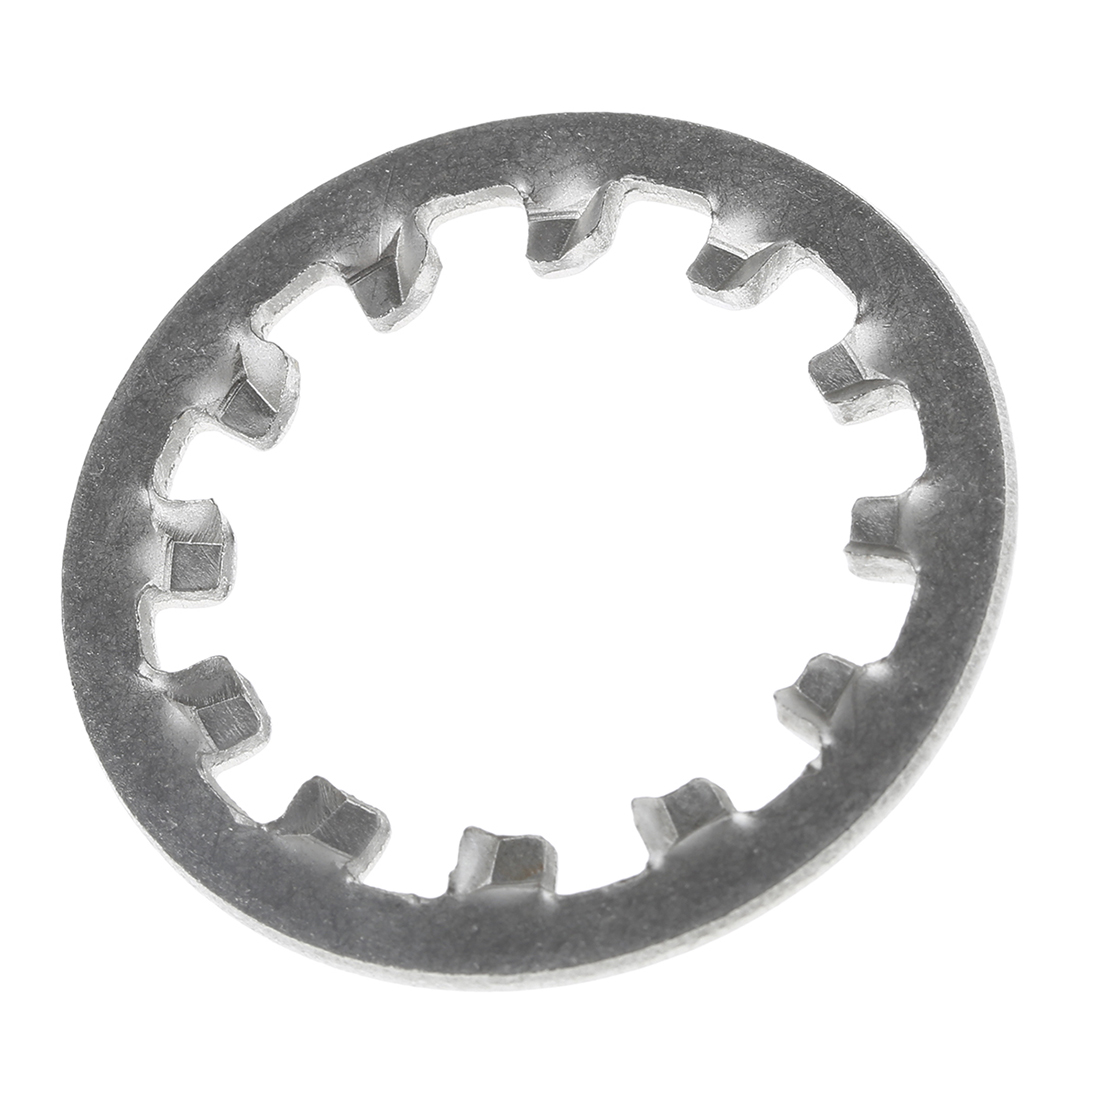 Plain Stainless Steel Internal Tooth Shakeproof Washer, M20, A2 304 - 50 Pack